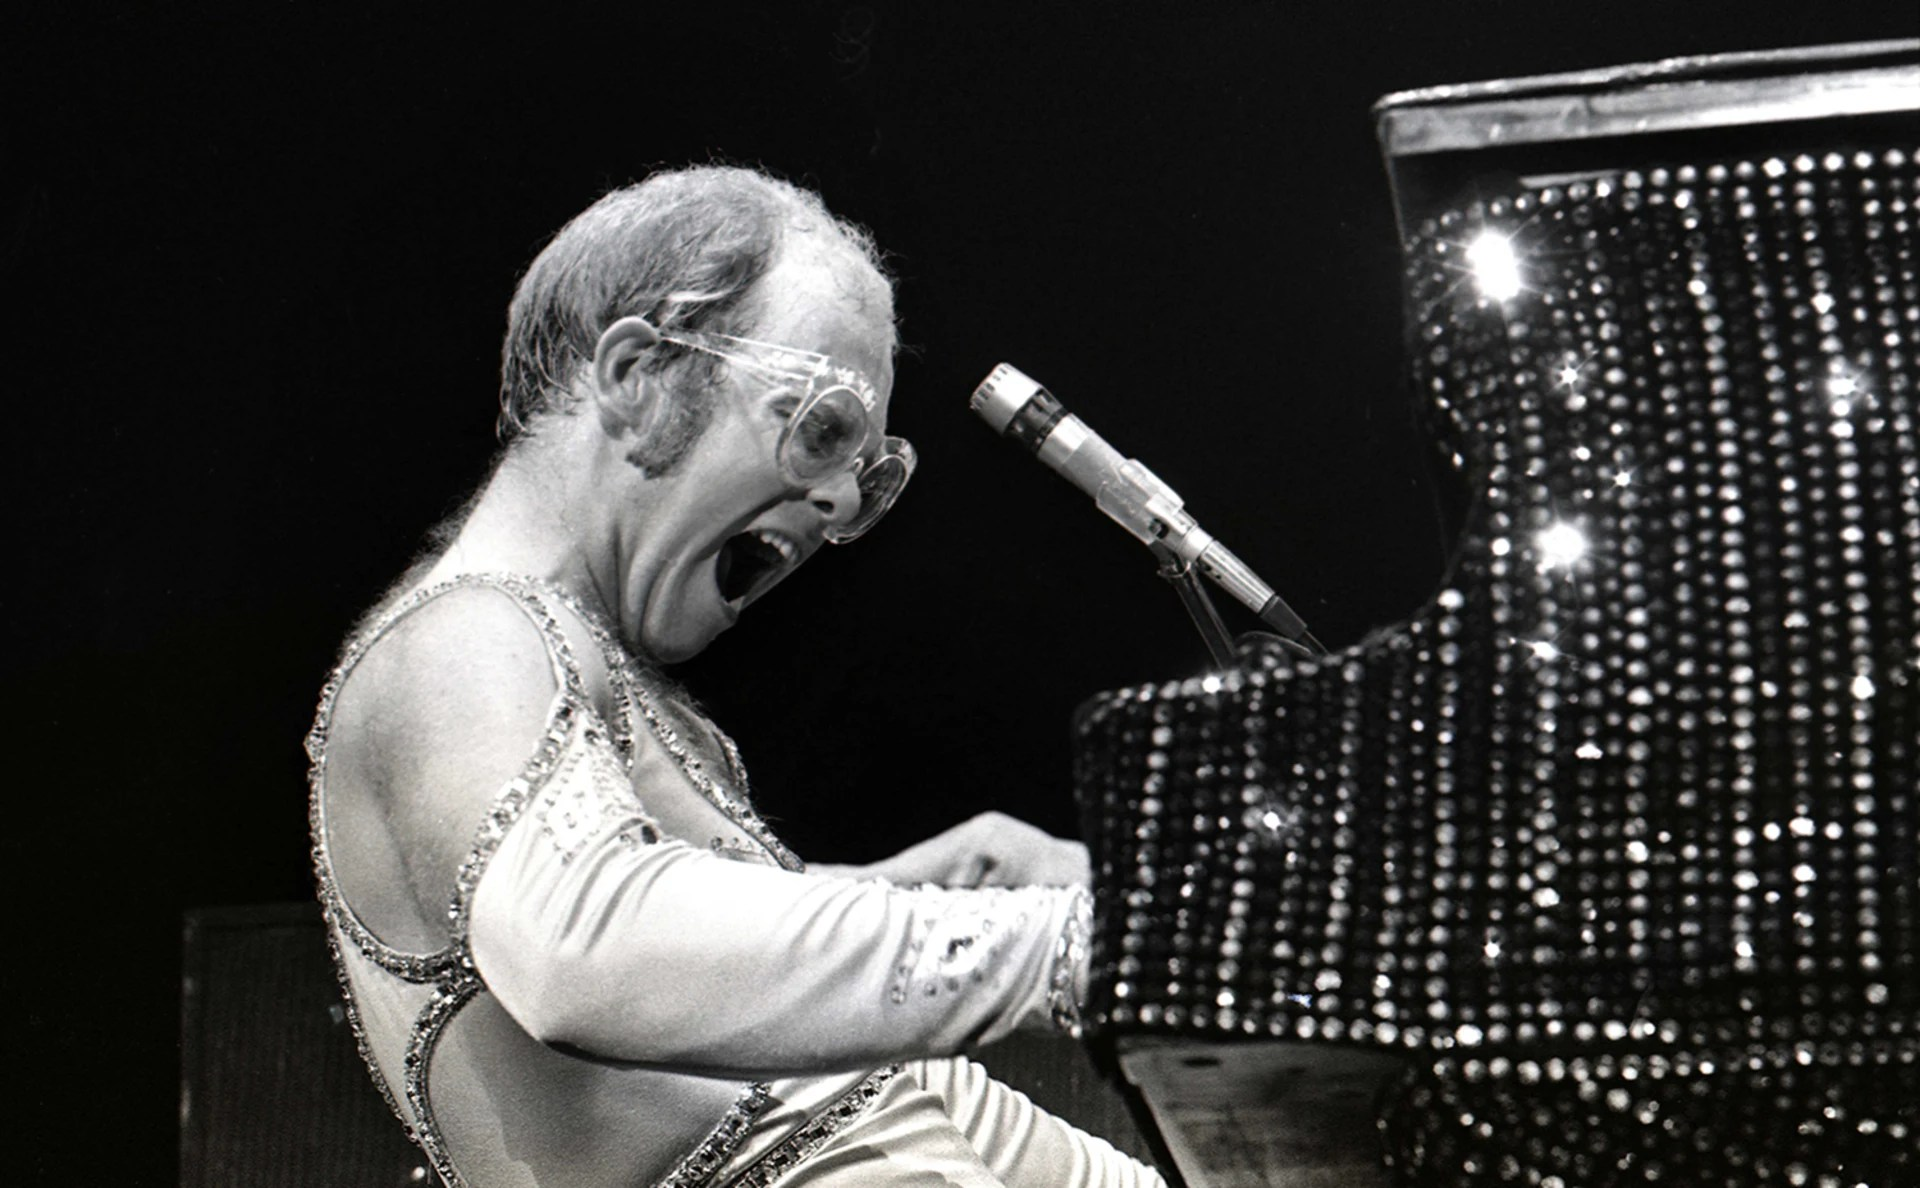 glam sofa 2 seater recliner the life and career of sir elton john - today.com